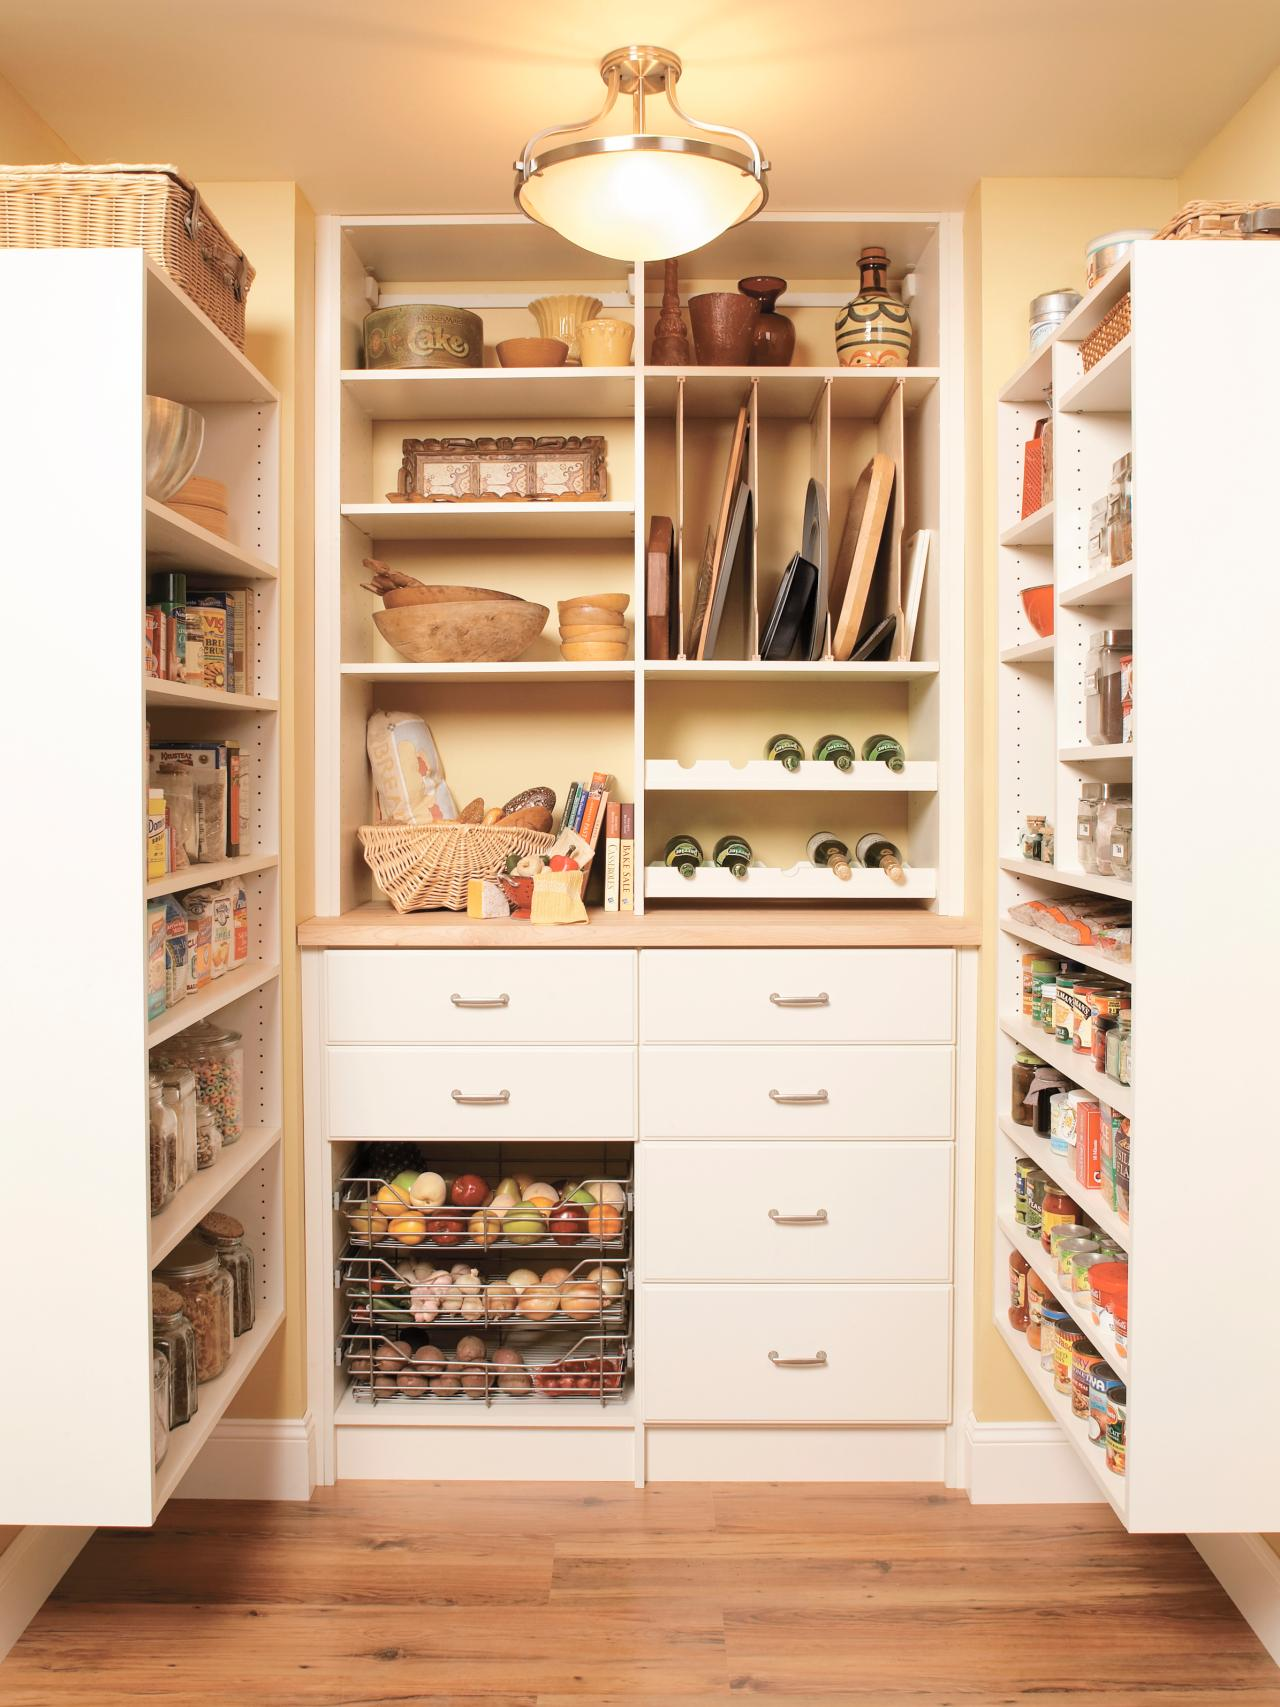 Kitchen Pantry Closet Design Ideas ~ Pictures of kitchen pantry designs ideas